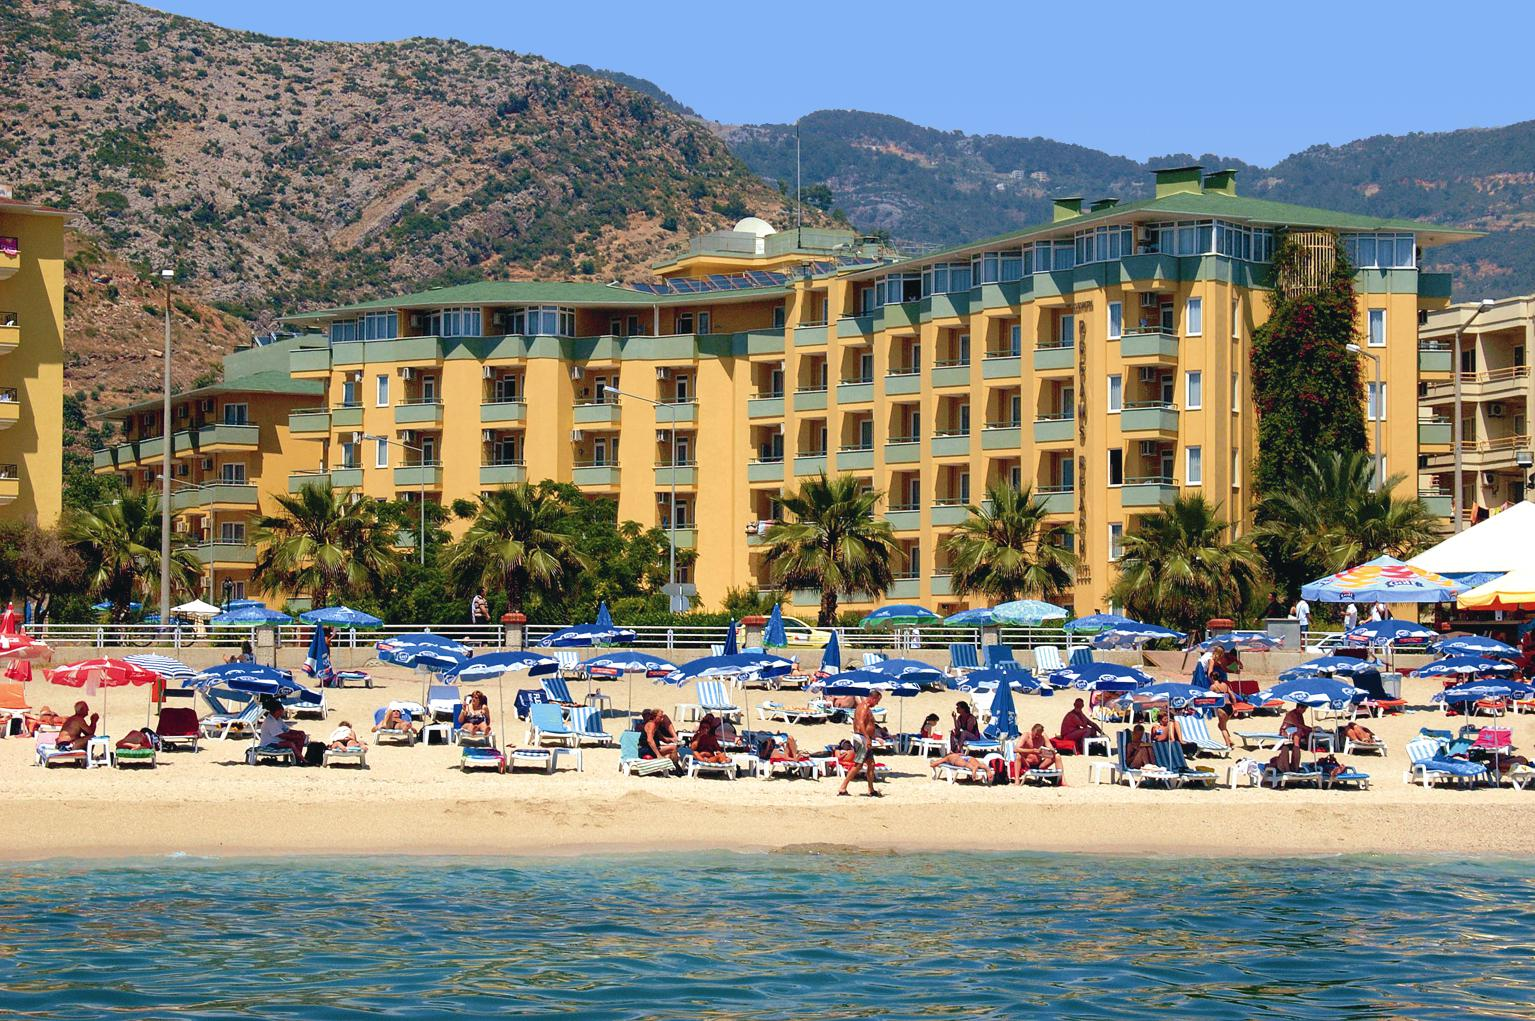 All Inclusive Turkije Prive Zwembad Hotel Kleopatra Dreams Beach All Inclusive In Turkse Rivièra